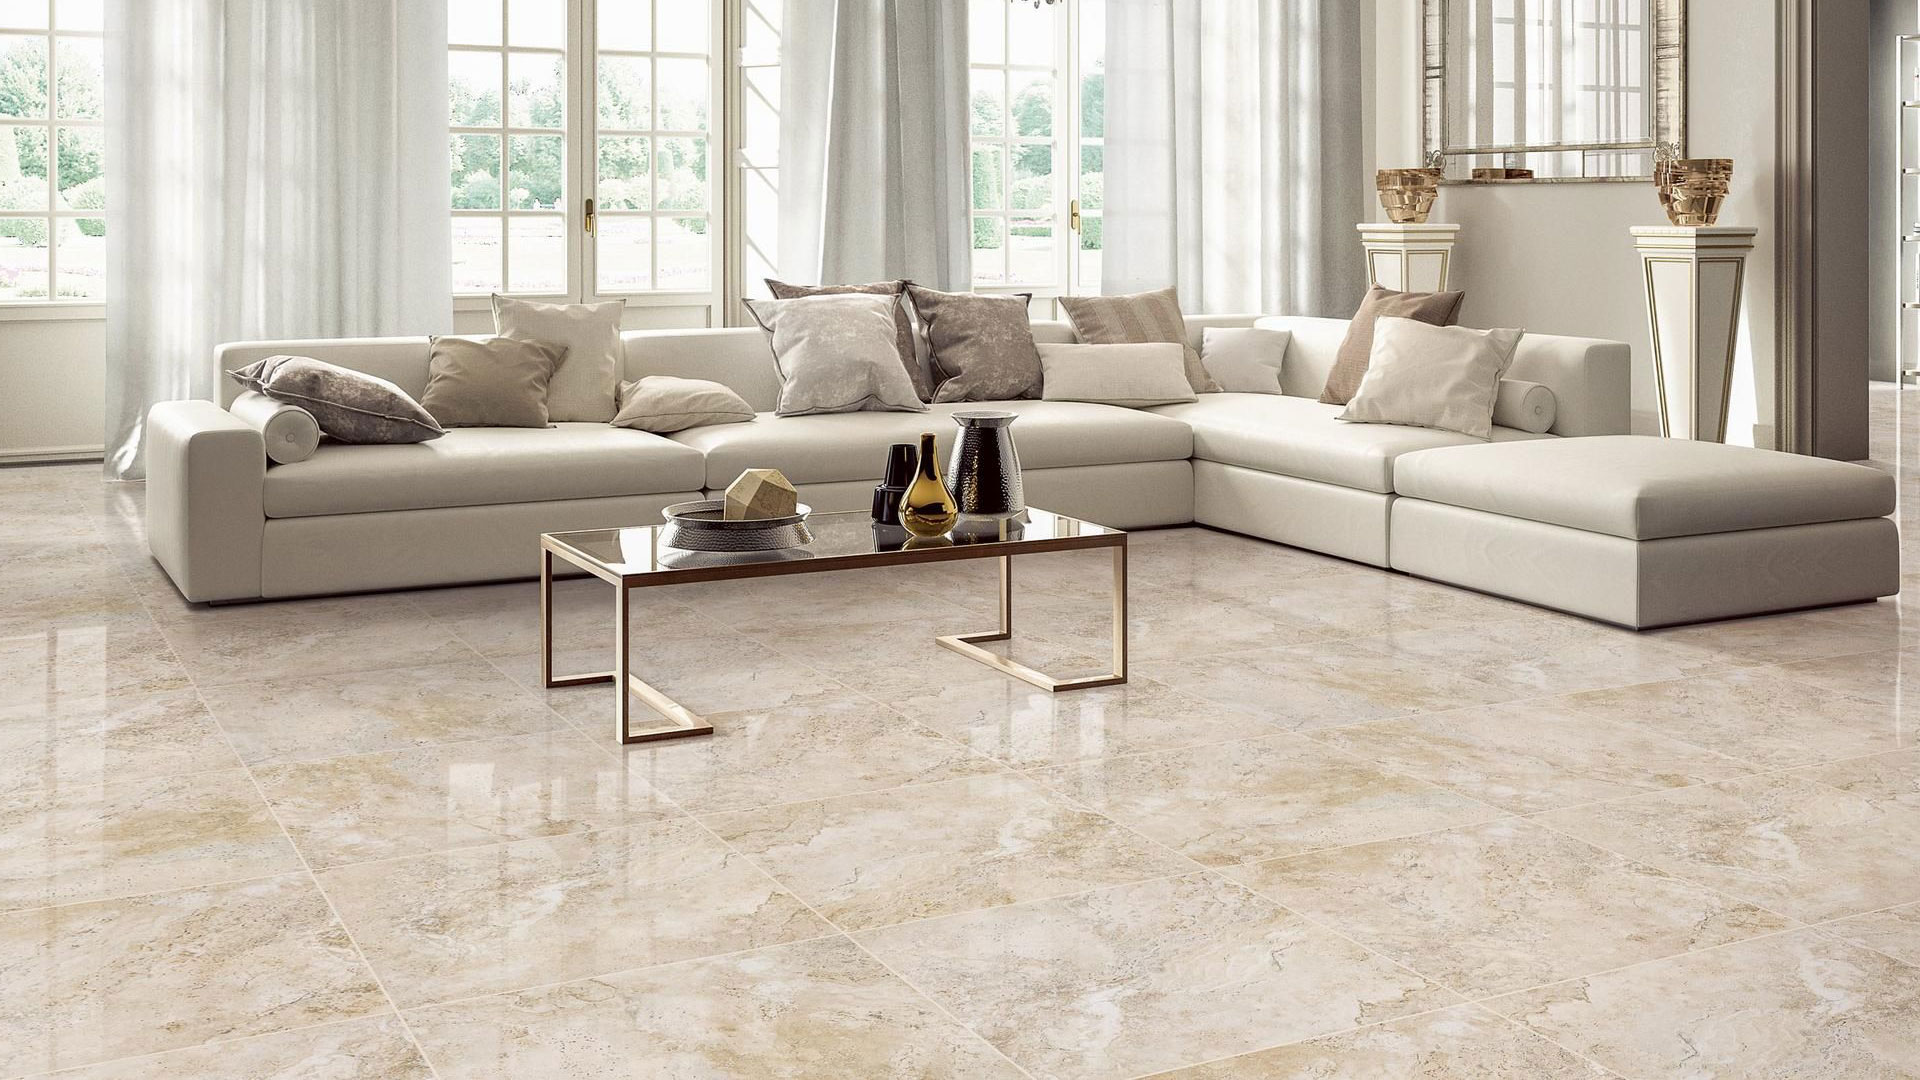 Porcelain Tiles for your Home Remodeling project in Lecanto, FL